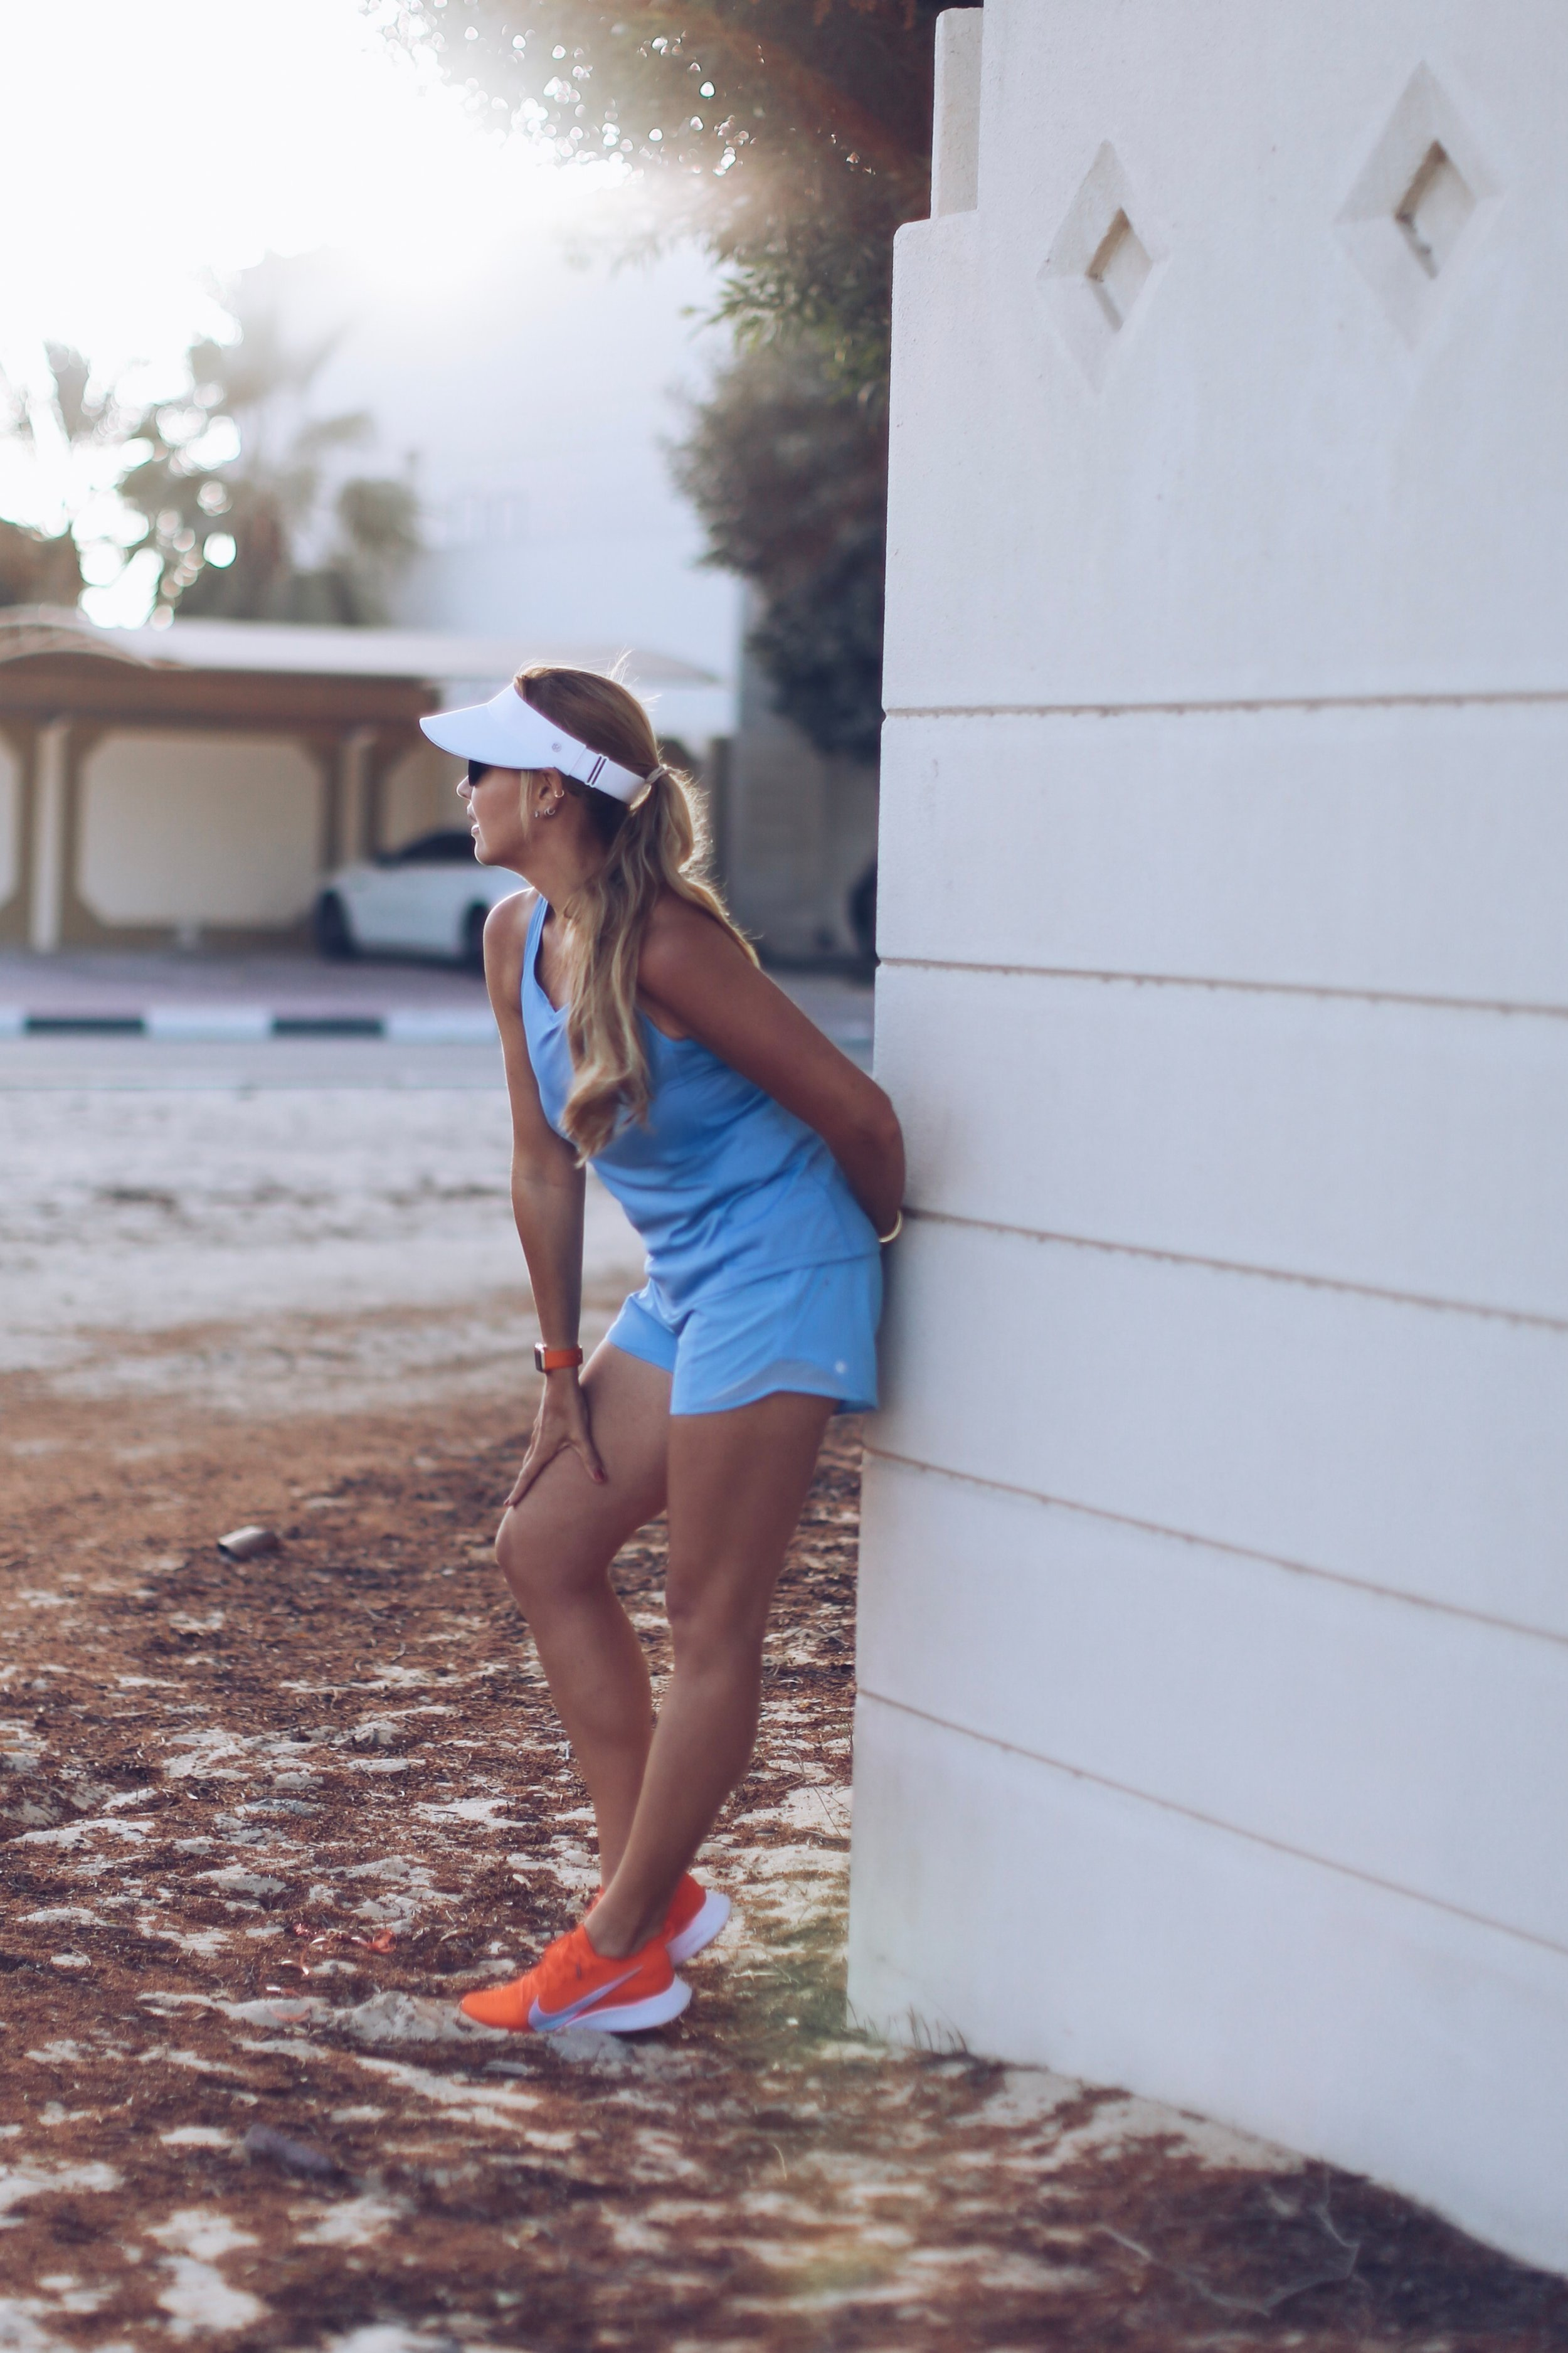 Visor by Lululemon, top by Nike, shorts by Lululemon, watch by Apple Watch and sneakers by Nike